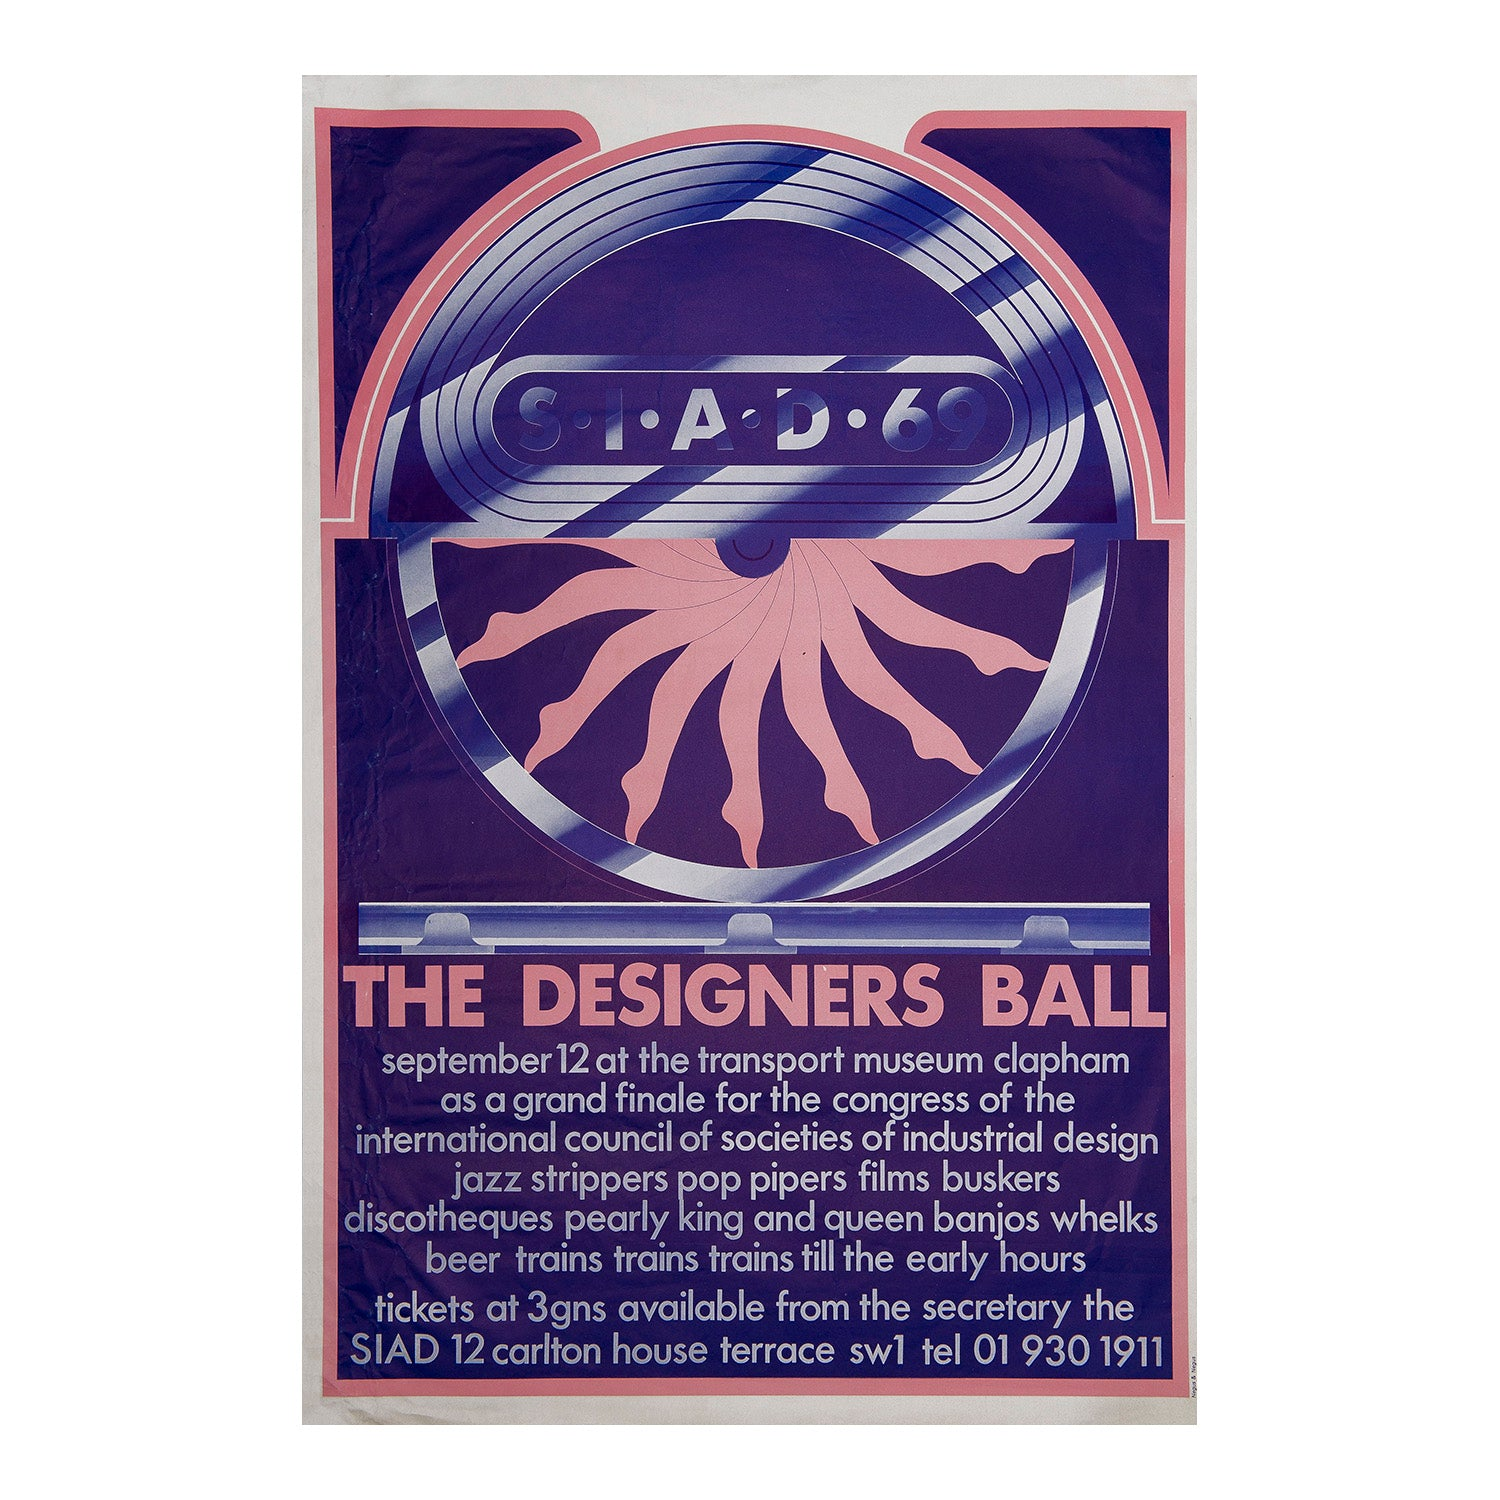 SIAD The Designers Ball